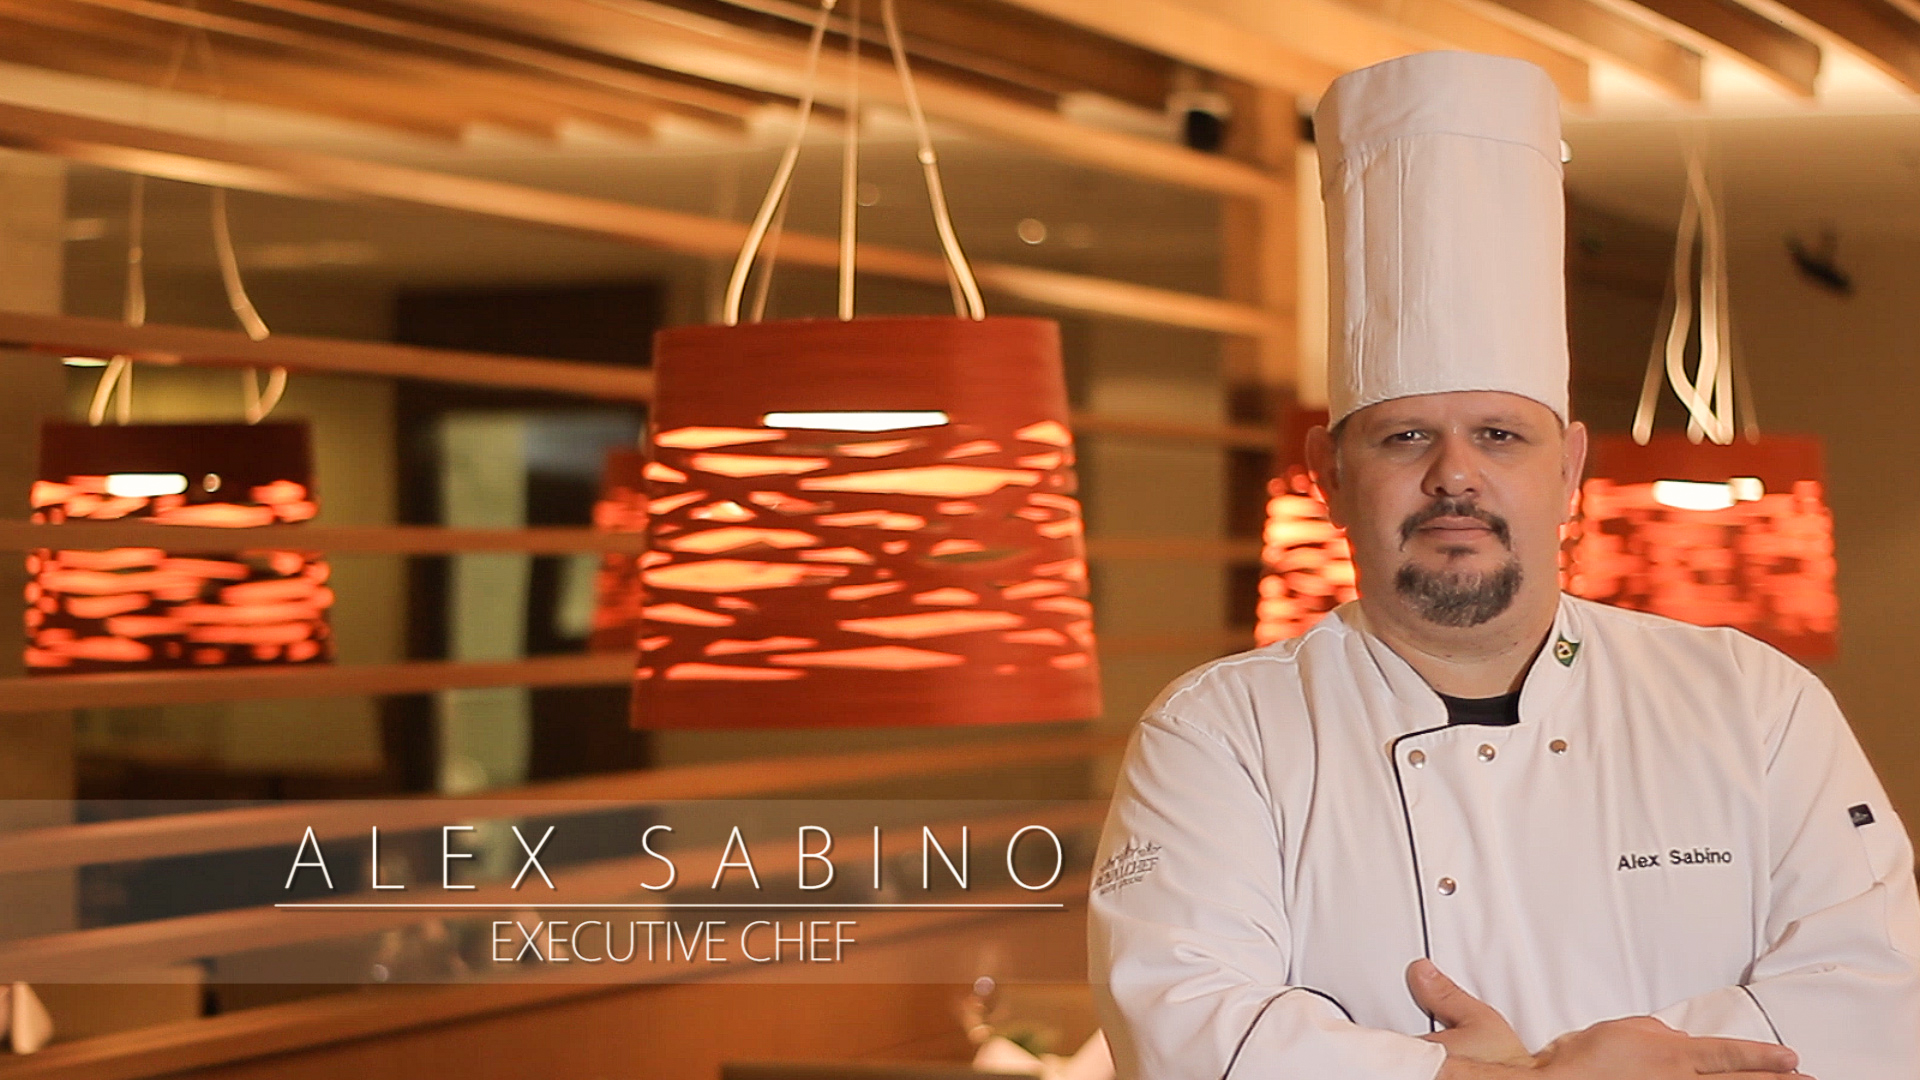 Video Institucional Alex Sabino – Executive Chef